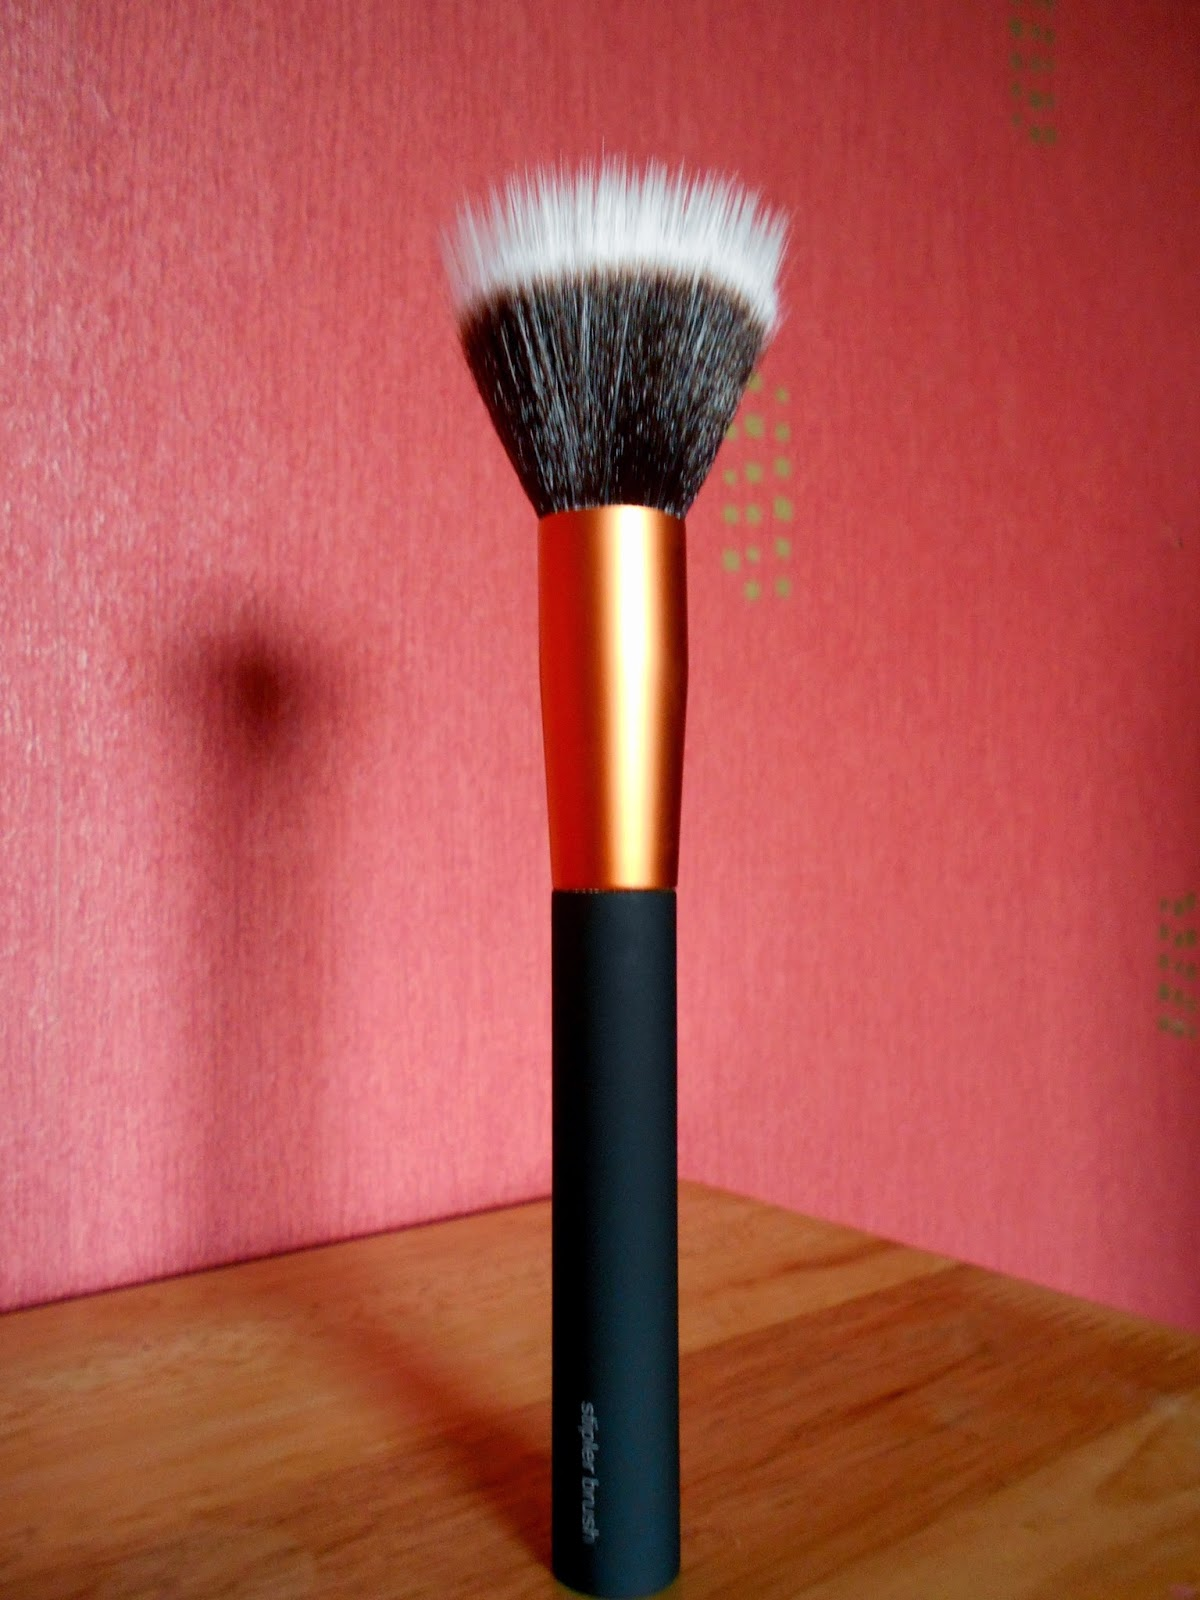 Wilkinsons Make-up Brushes - Stippler Foundation Brush